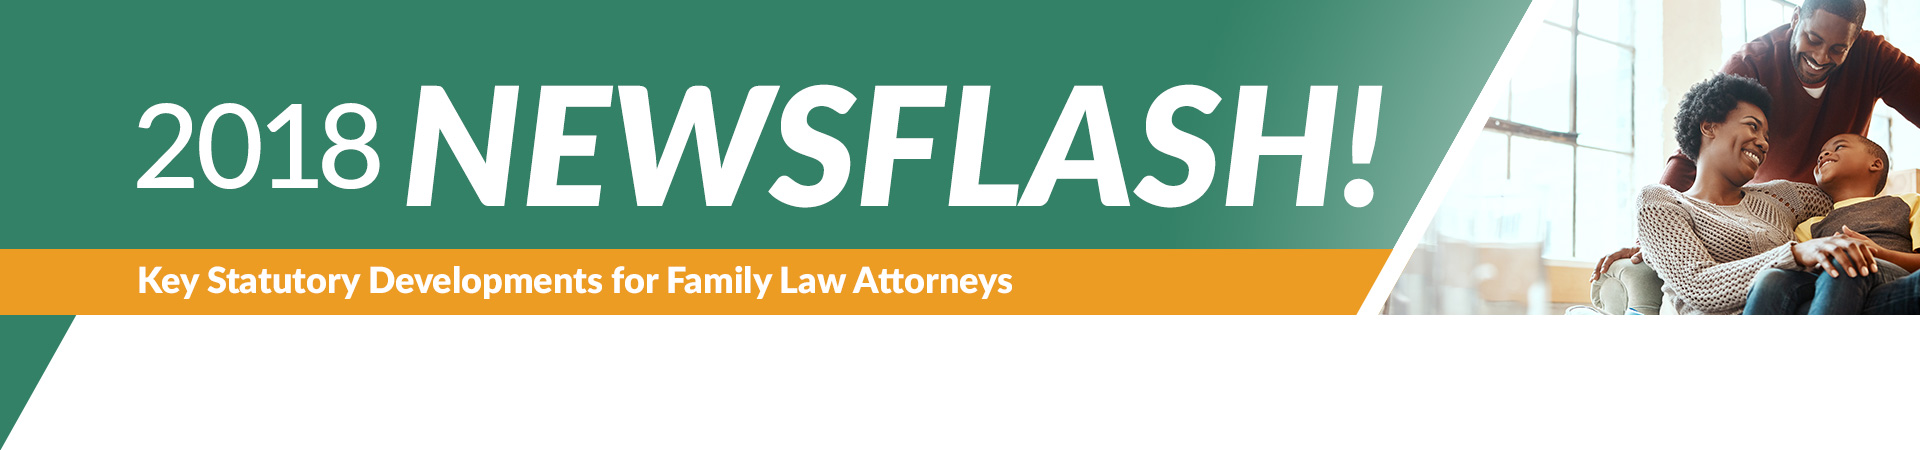 2018 NewFlash Employment Law